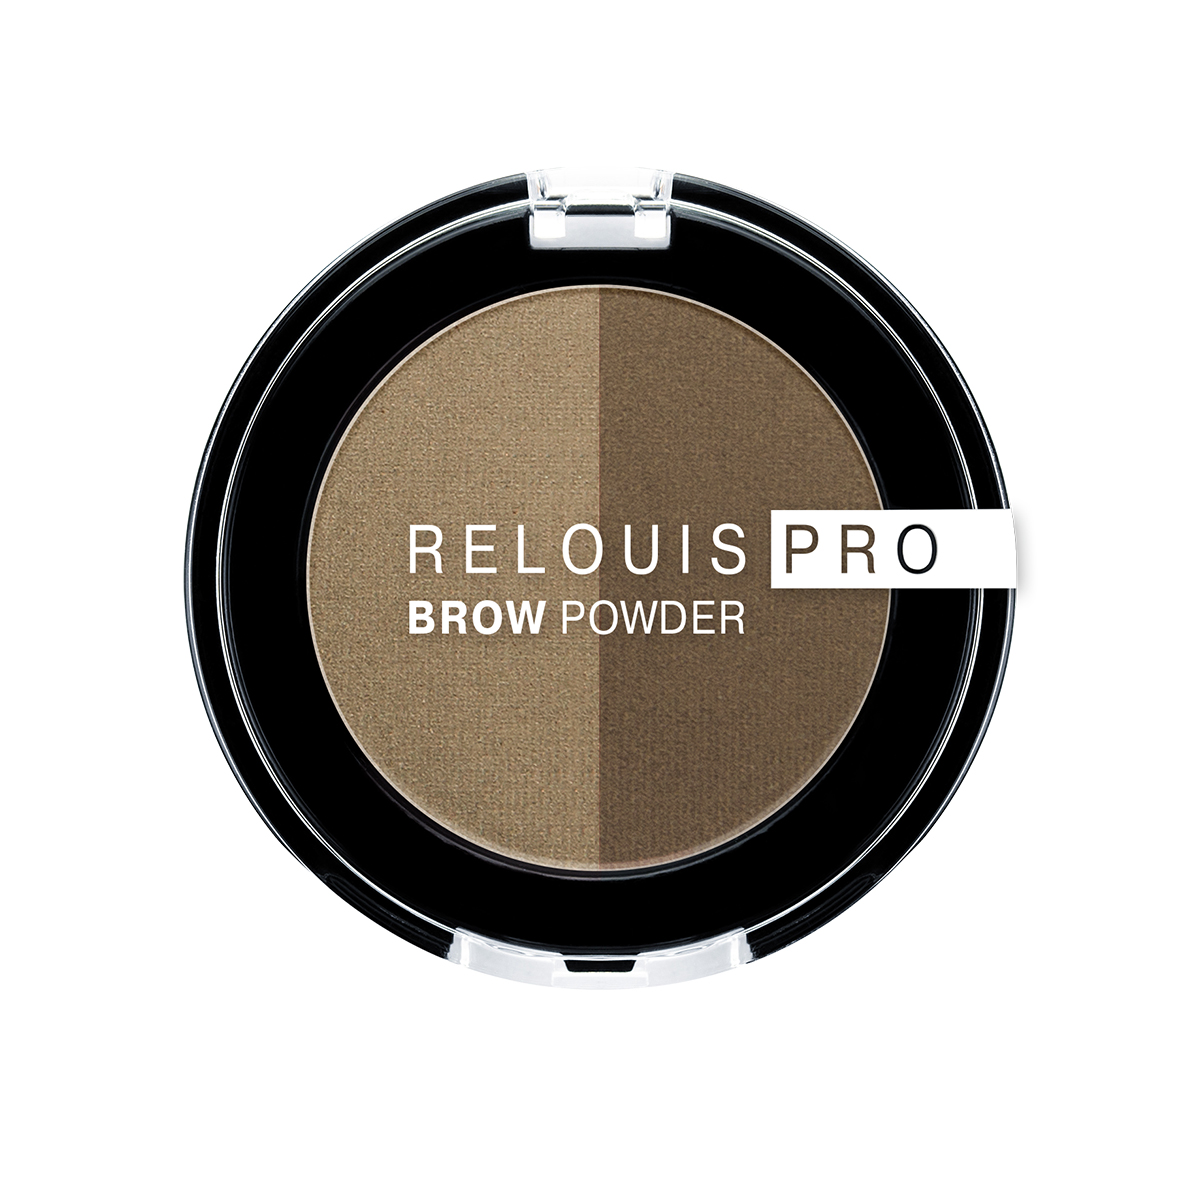 RELOUIS PRO Brow Powder 01 blonde